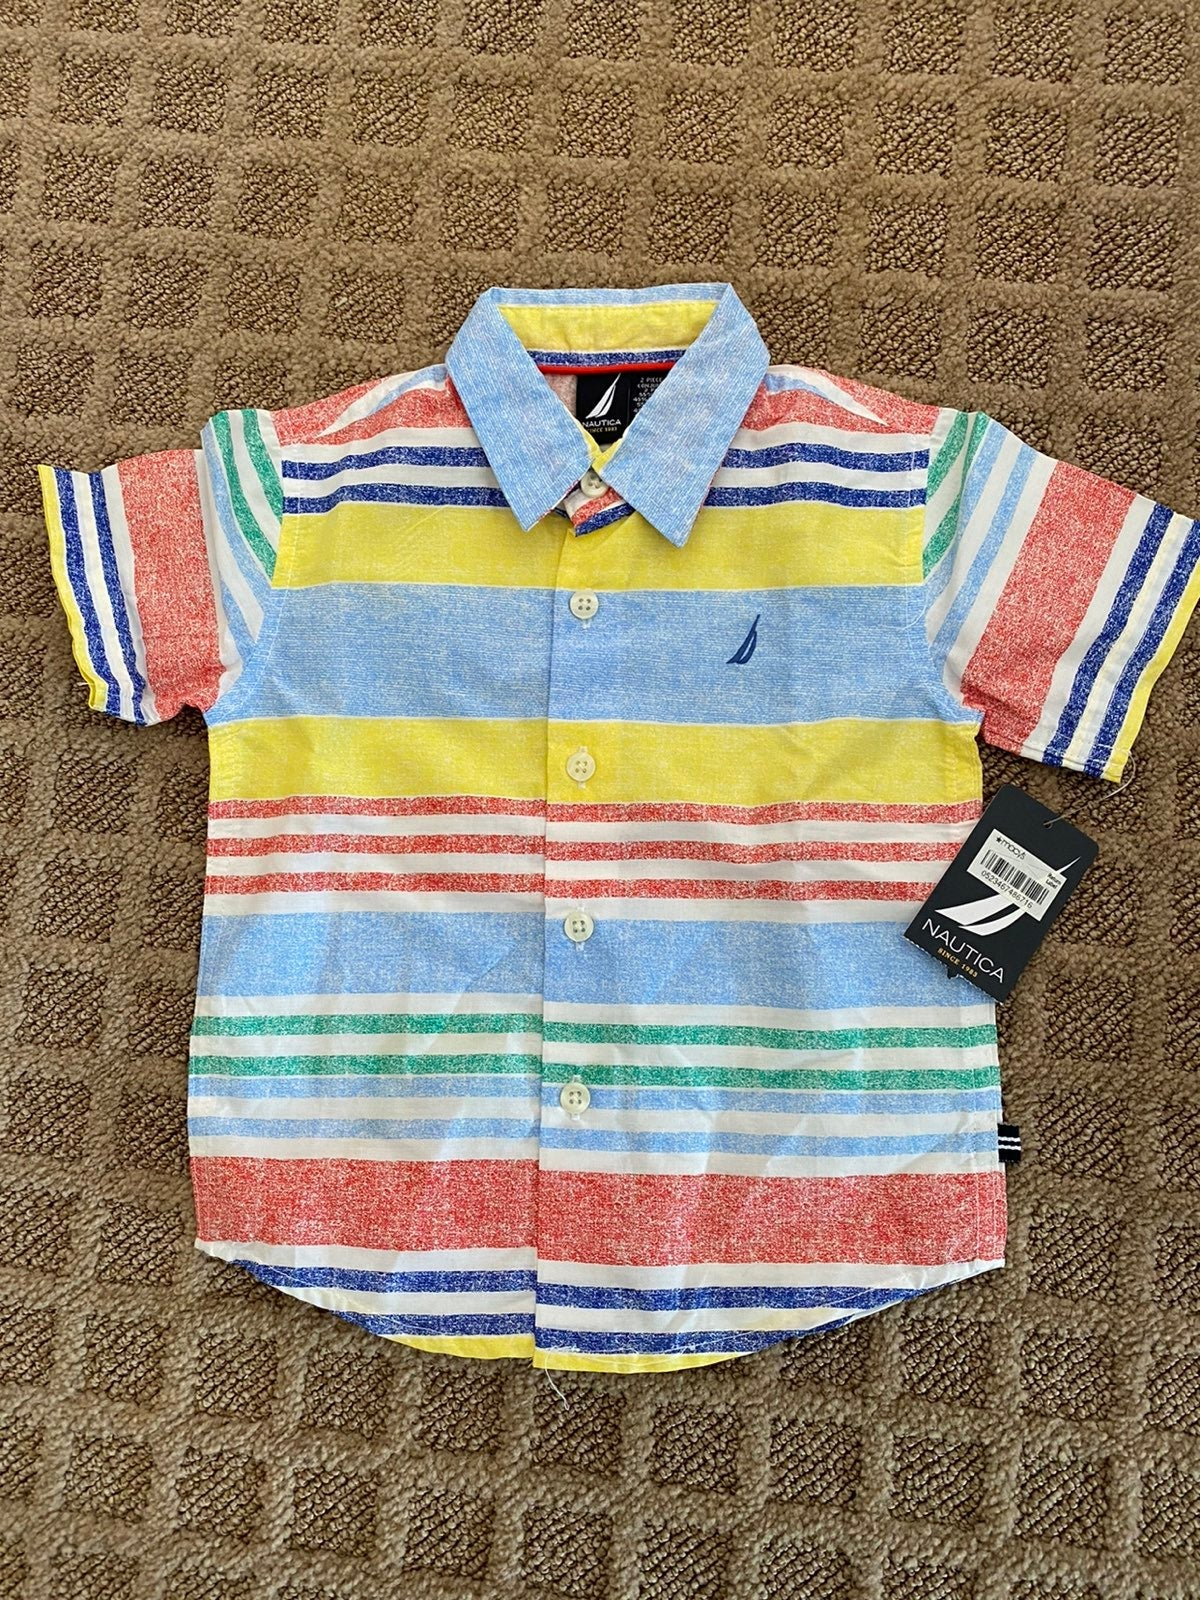 New Nautica polo shirt top 24 months